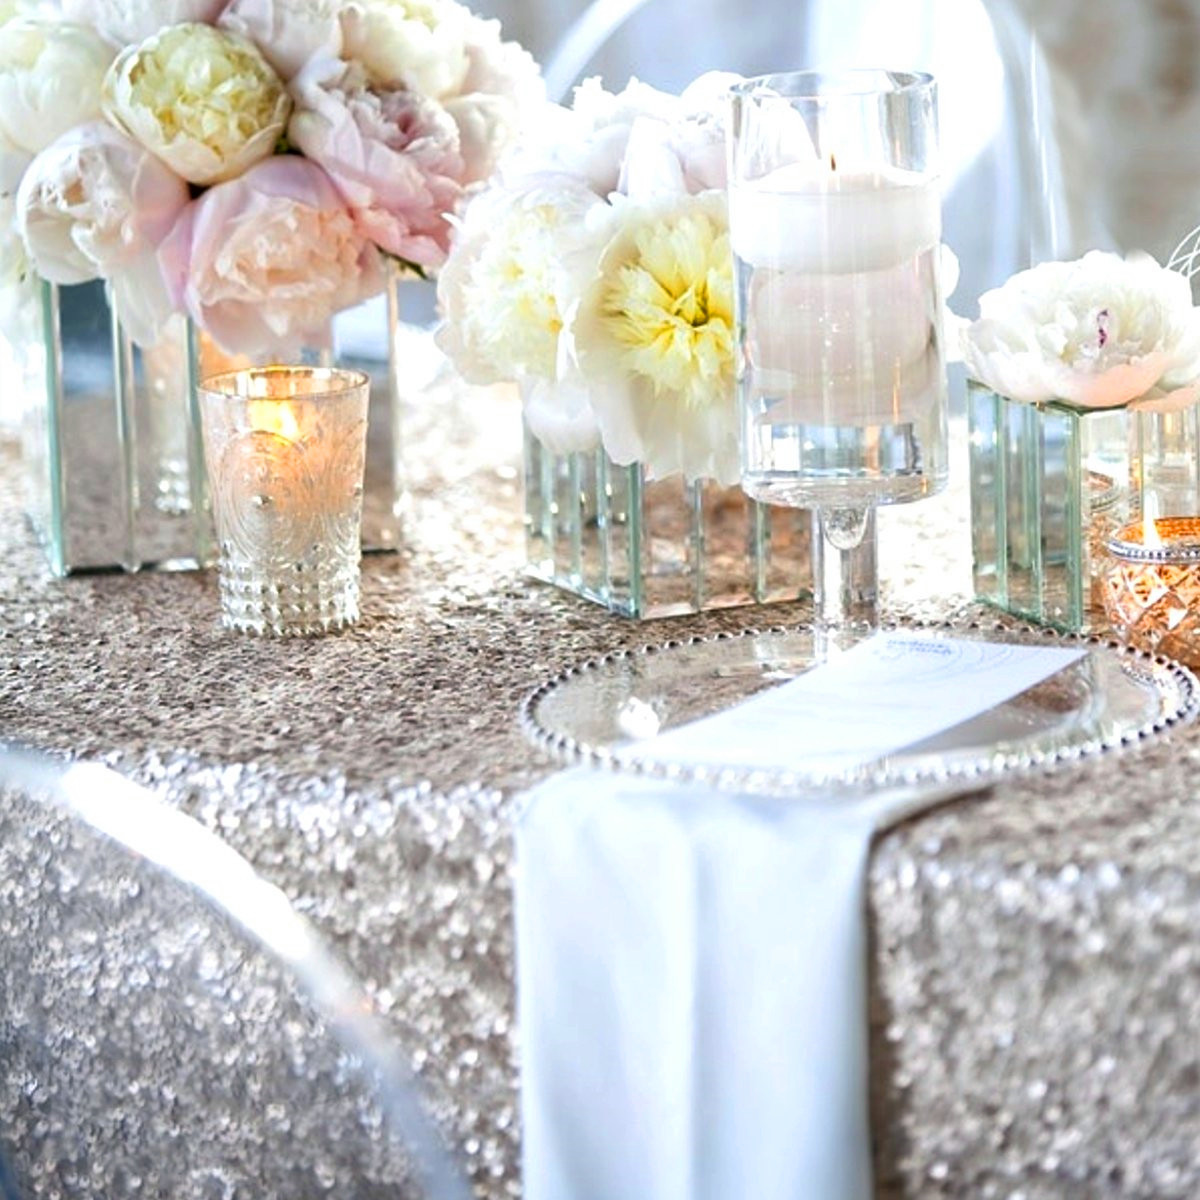 100*150cm Rectangular Silver Sequin Tablecloth Wedding Party Banquet Table Decoration